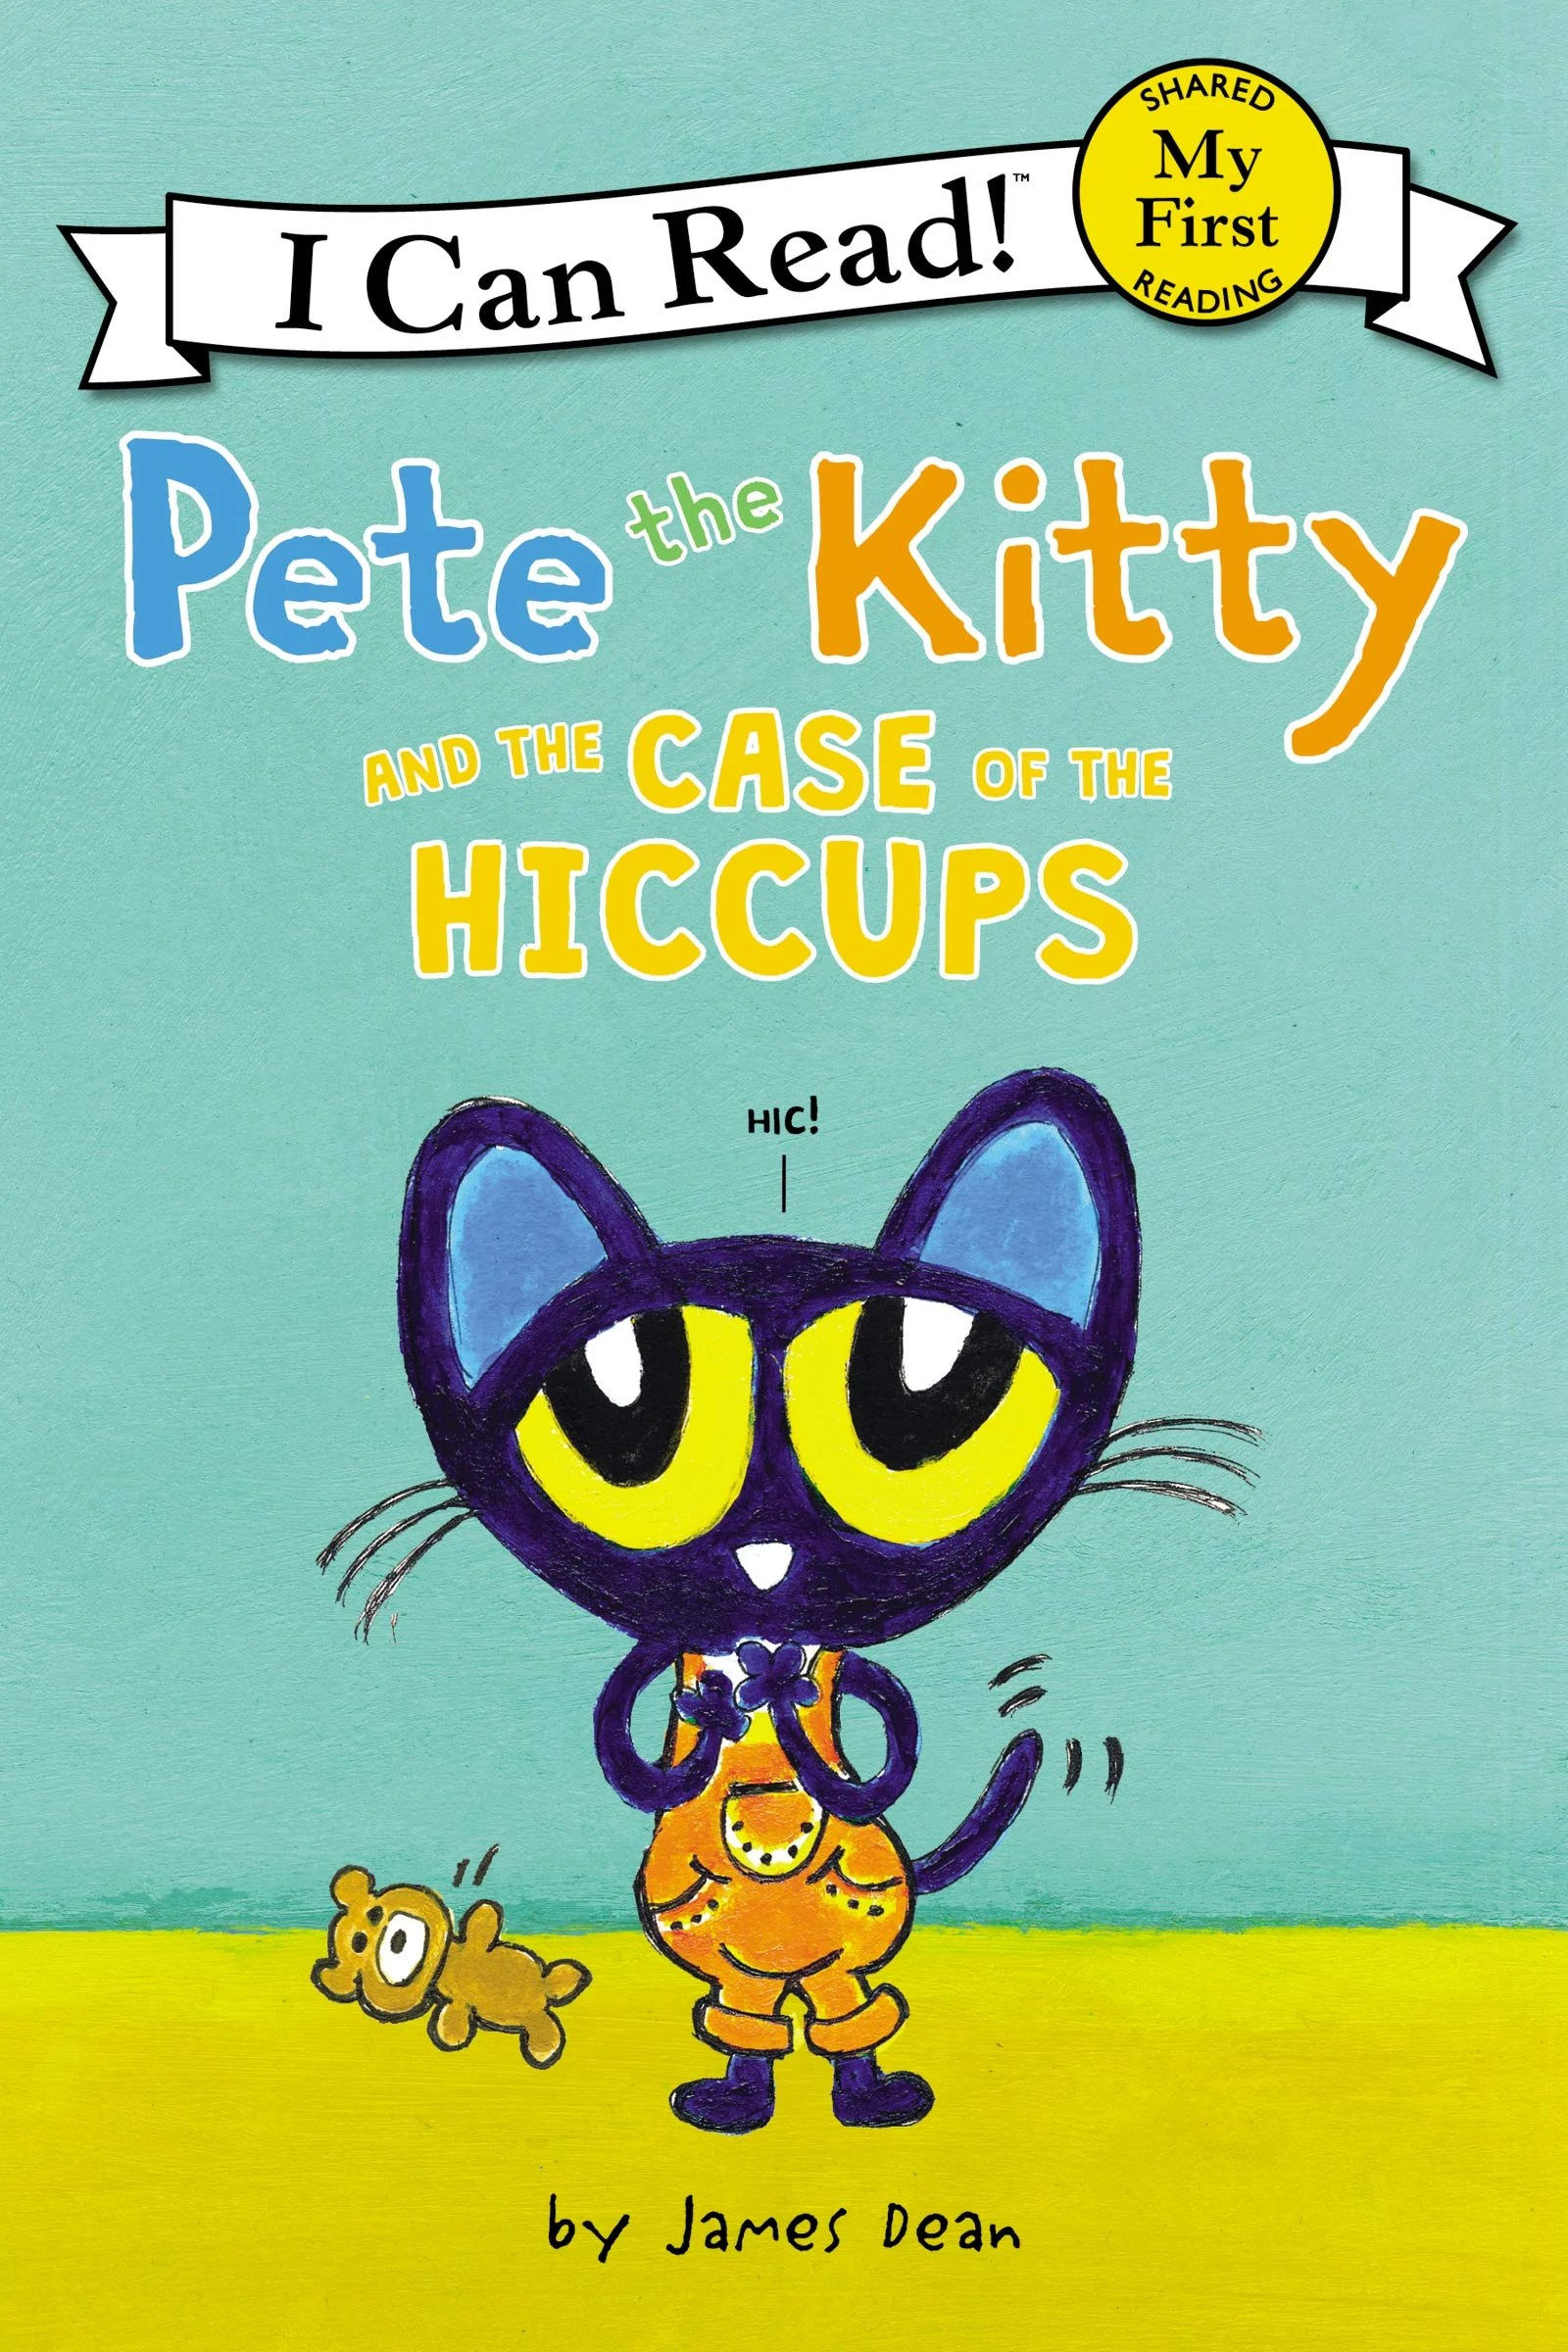 pete the cat pete the kitty and the case of the hiccups